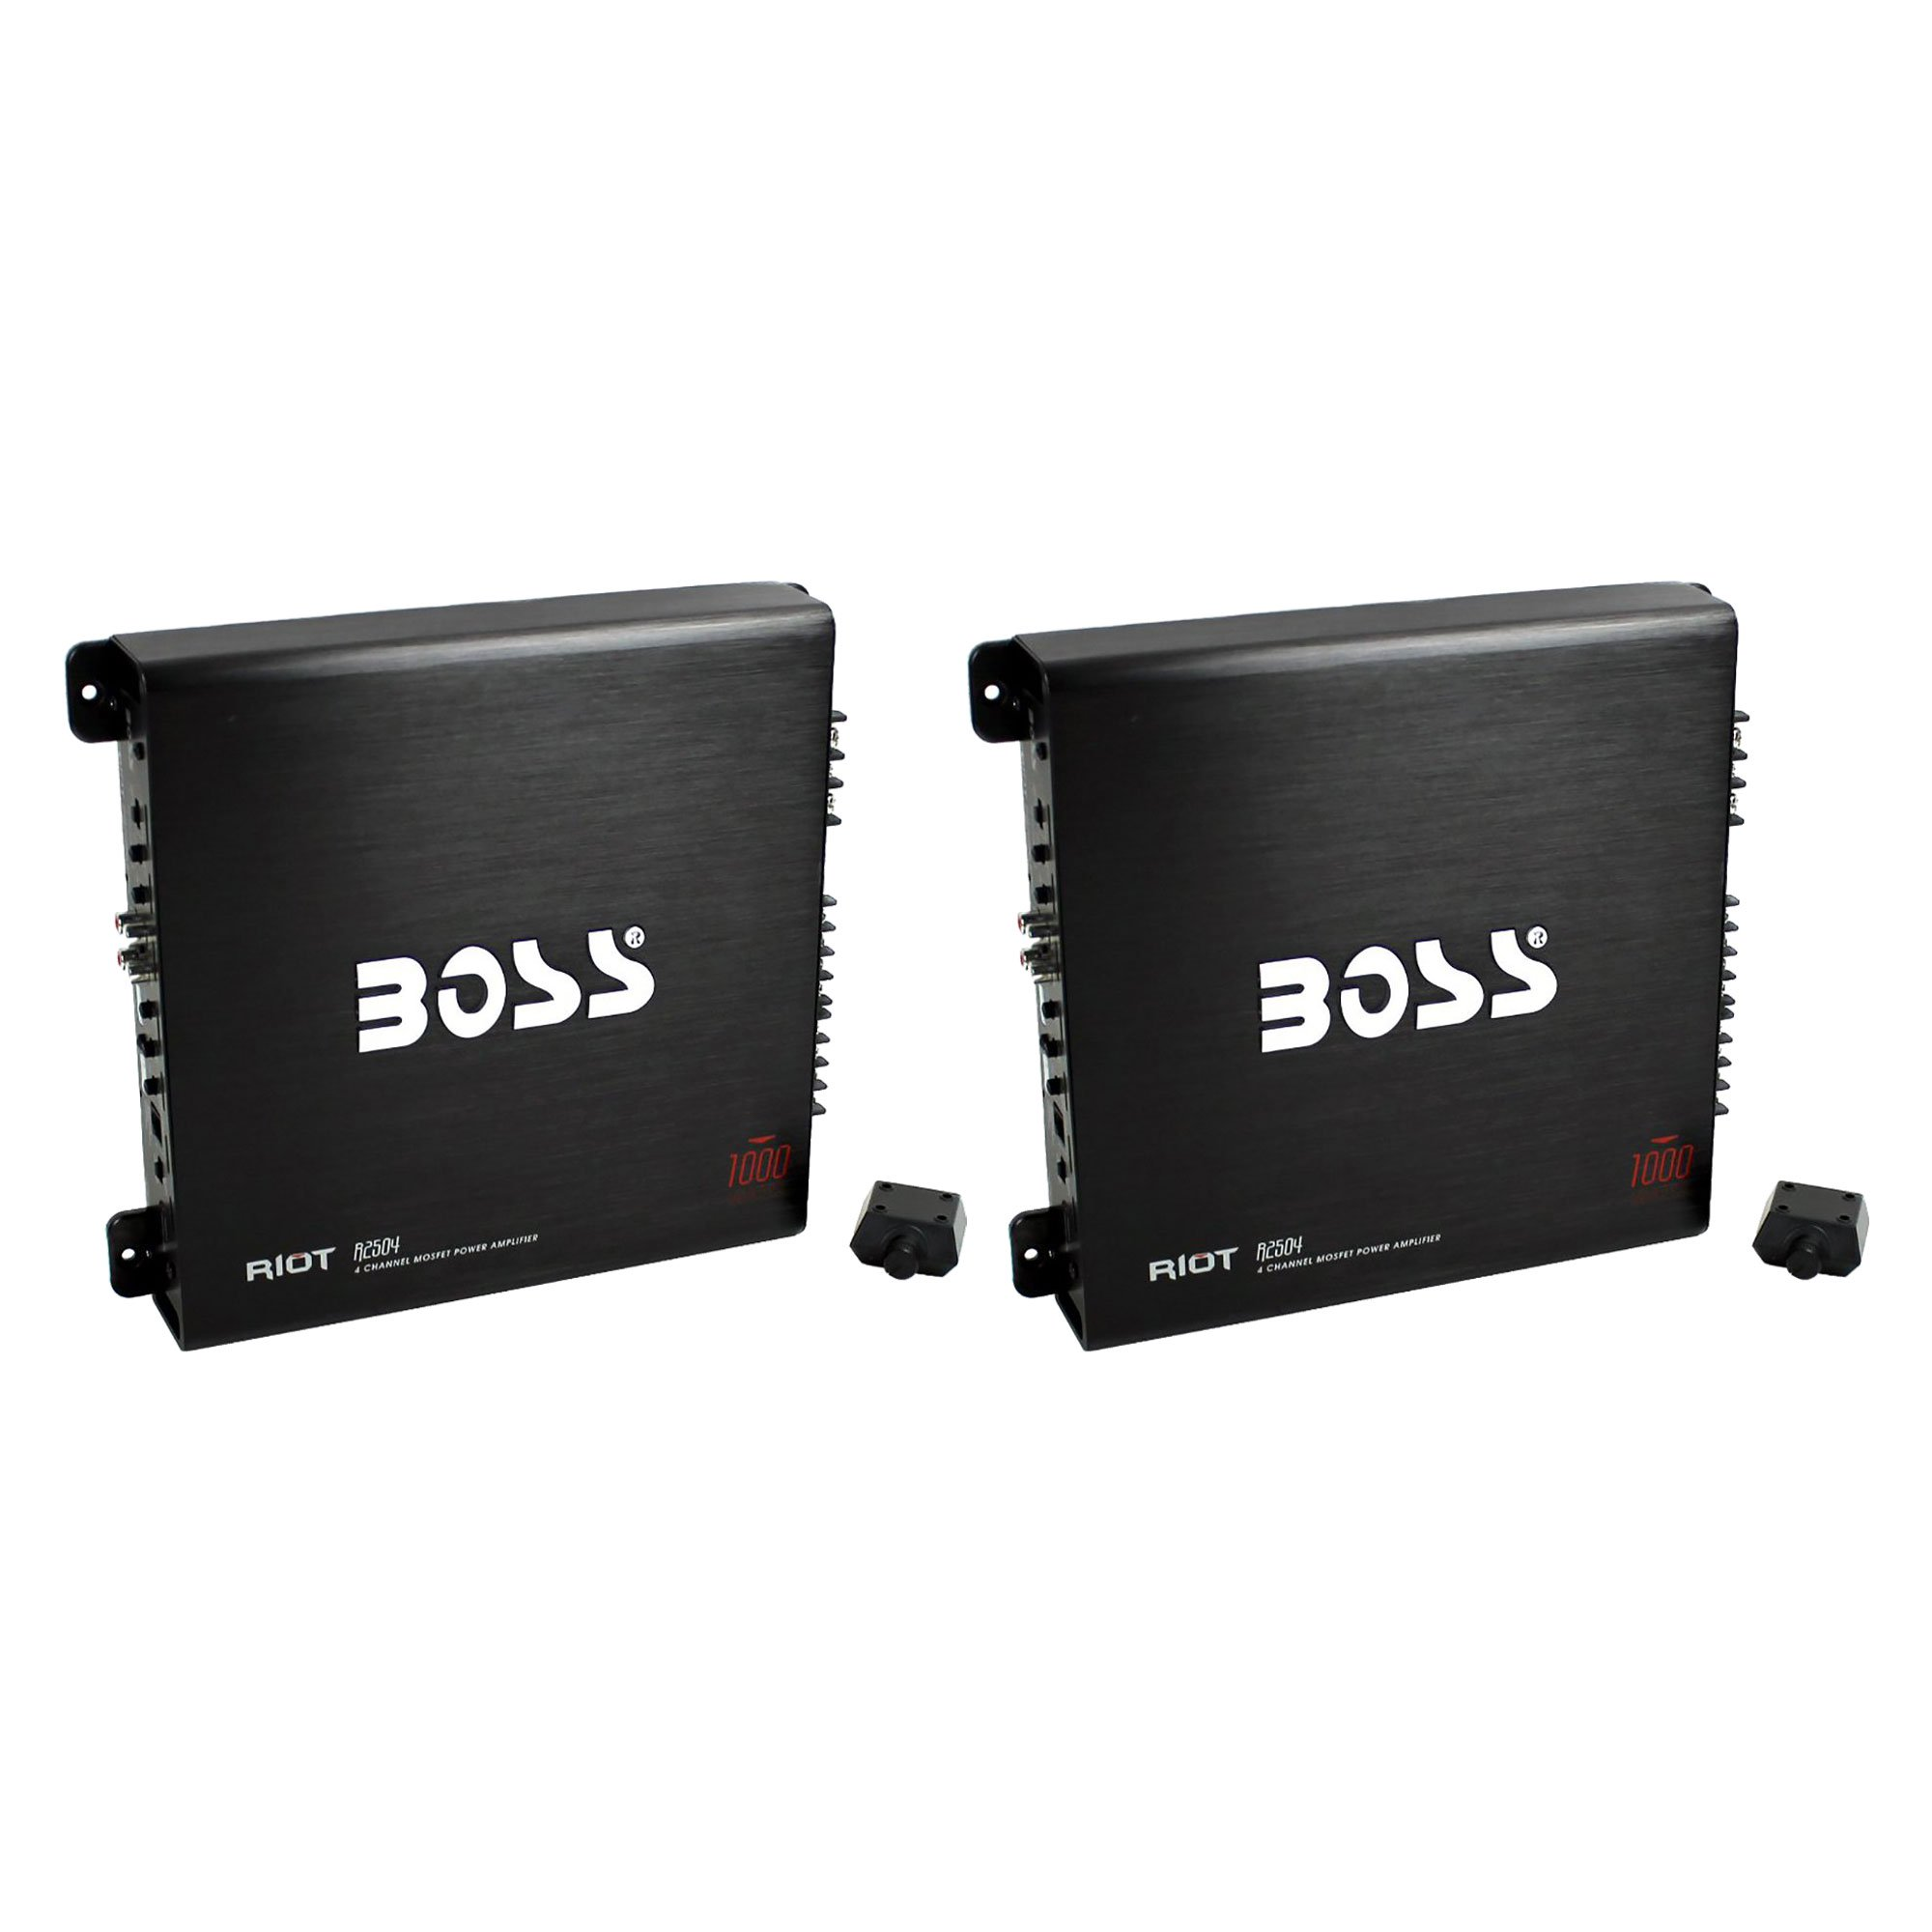 Boss Audio 1000W 4 Channel Car Audio Power Stereo Amplifier w/ Remote (2 Pack)